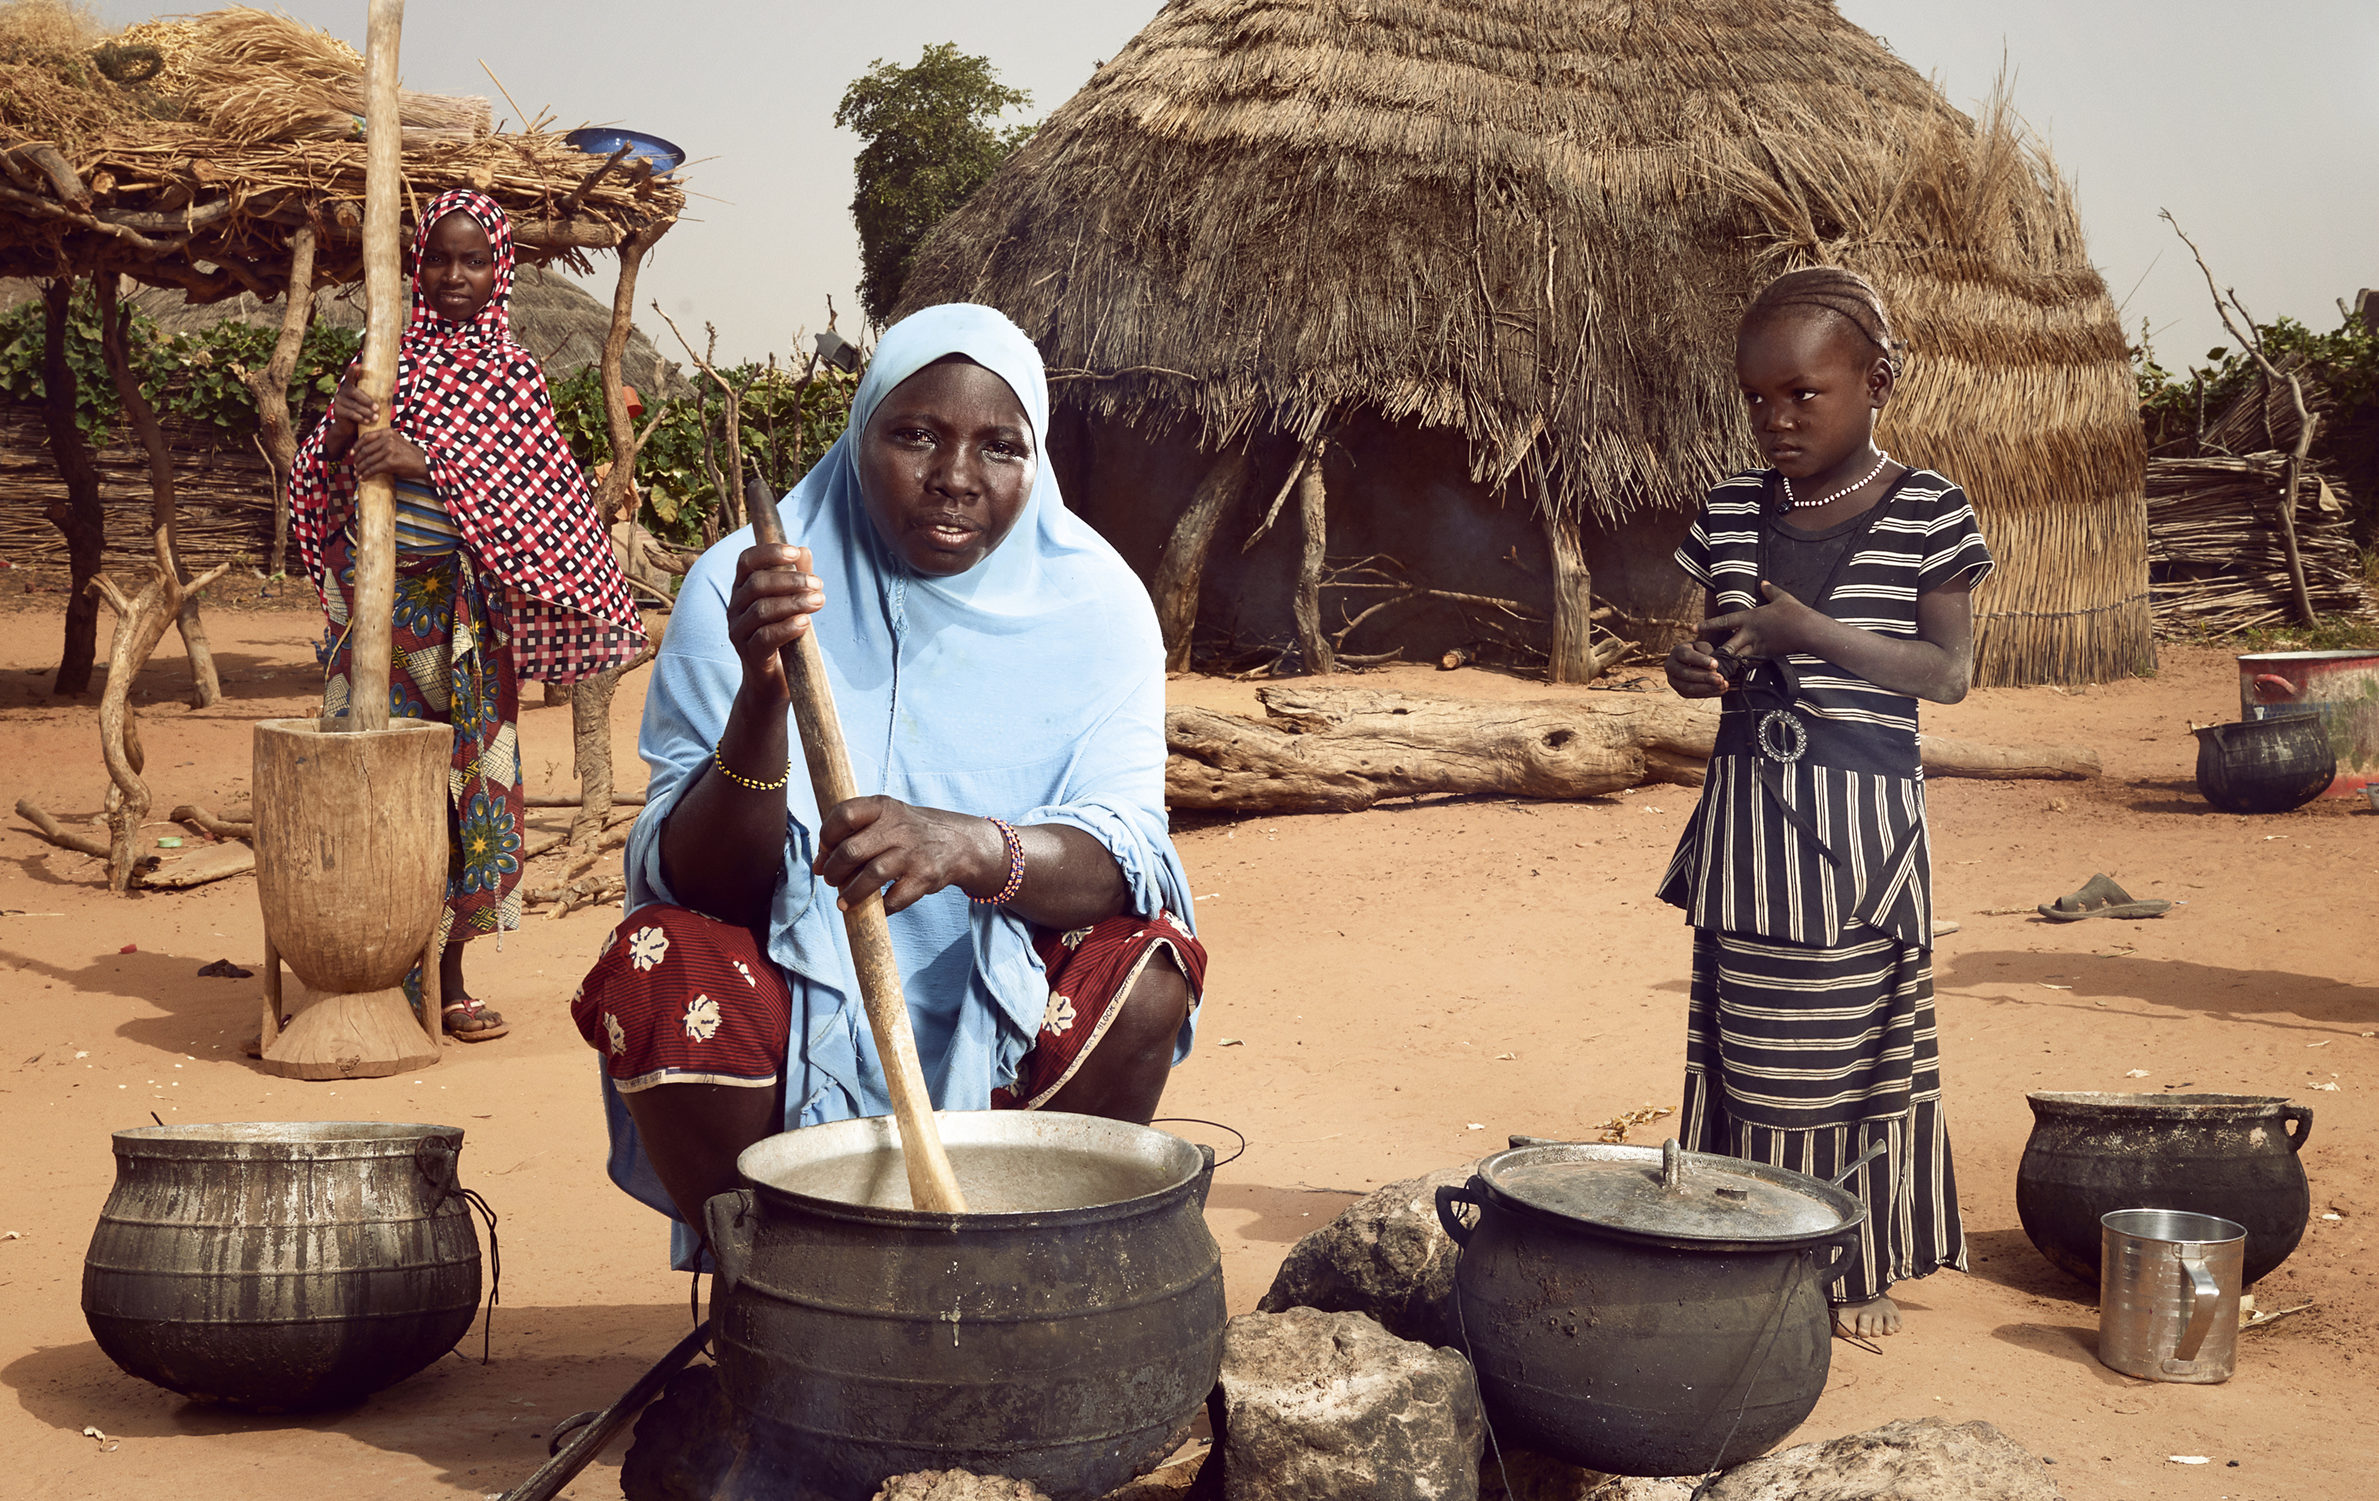 Hadiza (center) prepares a family meal, aided by her daughters Nadia, 4, and Layhanatou, 10, who grind millet in a wooden mortar. At age 32, Hadiza has six children, four sons and two daughters. She lives in Rabé chantier, a village 25 kilometers east of Dosso comprised of circular huts made of mud brick covered with straw, and granaries topped with straw hats. The little girls help their mother with chores while the men work in the fields. The village marabout sees to the children's education. The most widely grown grain in Niger, it is the country's dietary mainstay. Threshing, hulling and grinding millet by hand makes for a long, exhausting workday. The Ministry of Population, Advancement of Women and Protection of Children has made it a priority to lighten women's workloads by providing them access to mills, hullers and water sources. In the countryside, however, many Niger women have no choice but to use the traditional methods. The agriculture sector in Niger is characterized by very low levels of farm input use and low productivity. Women account for approximately 24% of Niger's agricultural farm labour, but have sole ownership of only 9% of the total land area controlled by Niger's households. Increasing women's contributions to Niger's agricultural sector could help rural households lift themselves out of poverty. Photo: © Stephan Gladieu / World Bank